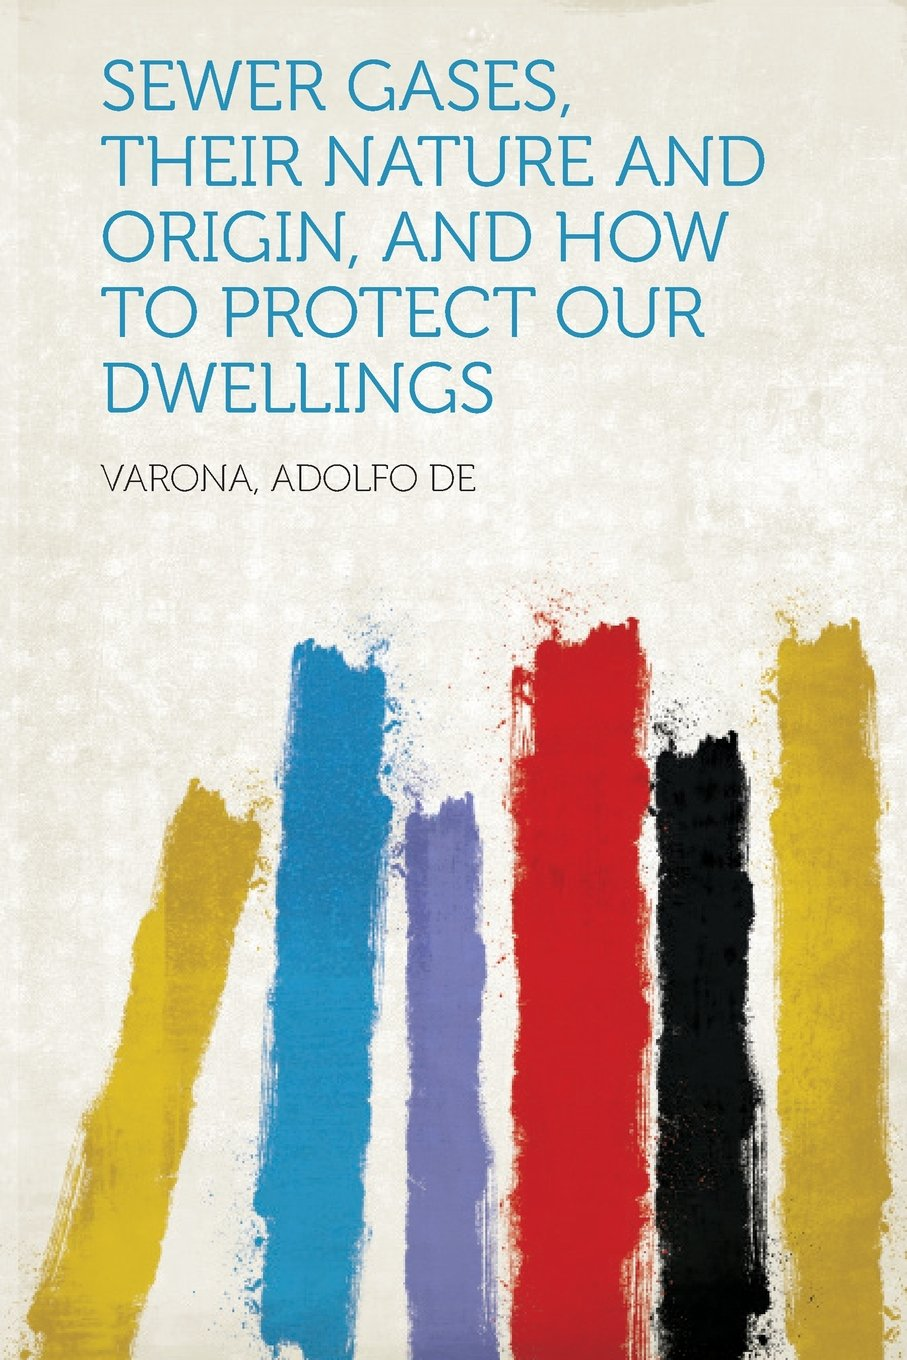 Sewer Gases, Their Nature and Origin, and How to Protect Our Dwellings pdf